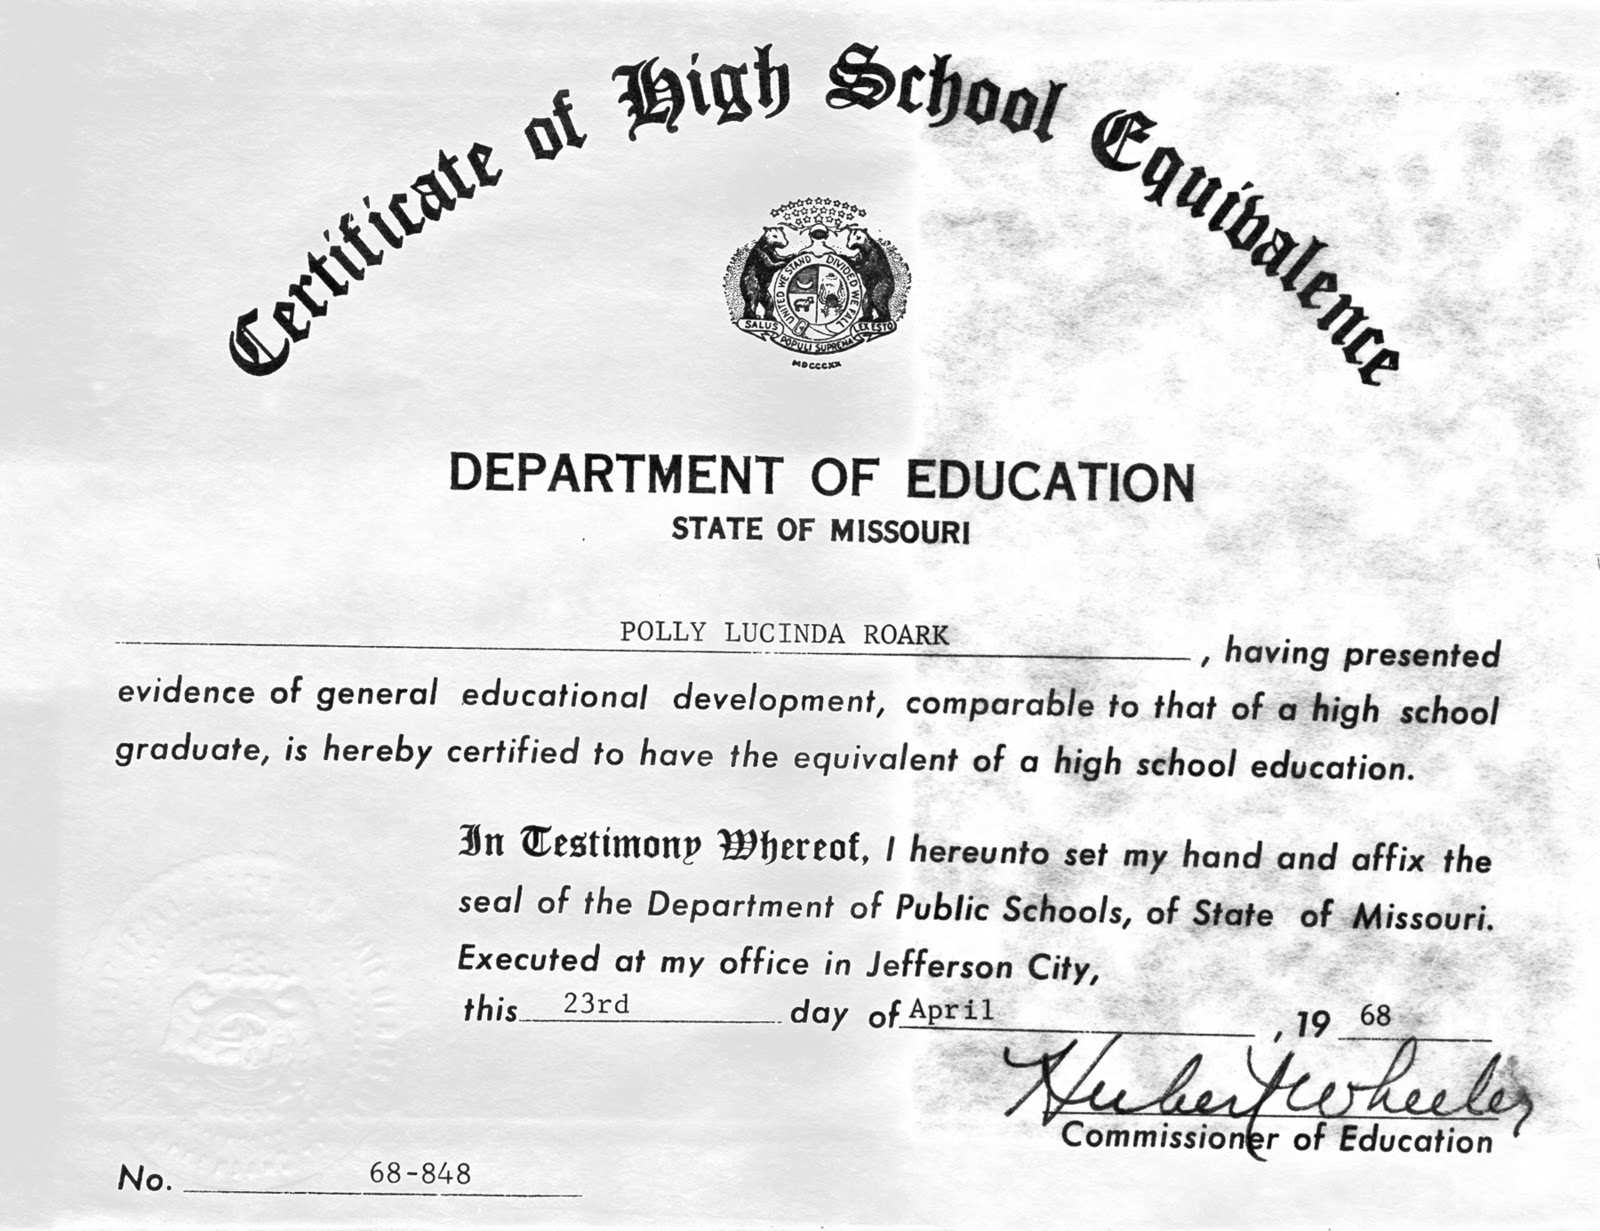 Printable Fake Ged Certificate For Free New Ged Certificate Line To - Printable Fake Ged Certificate For Free